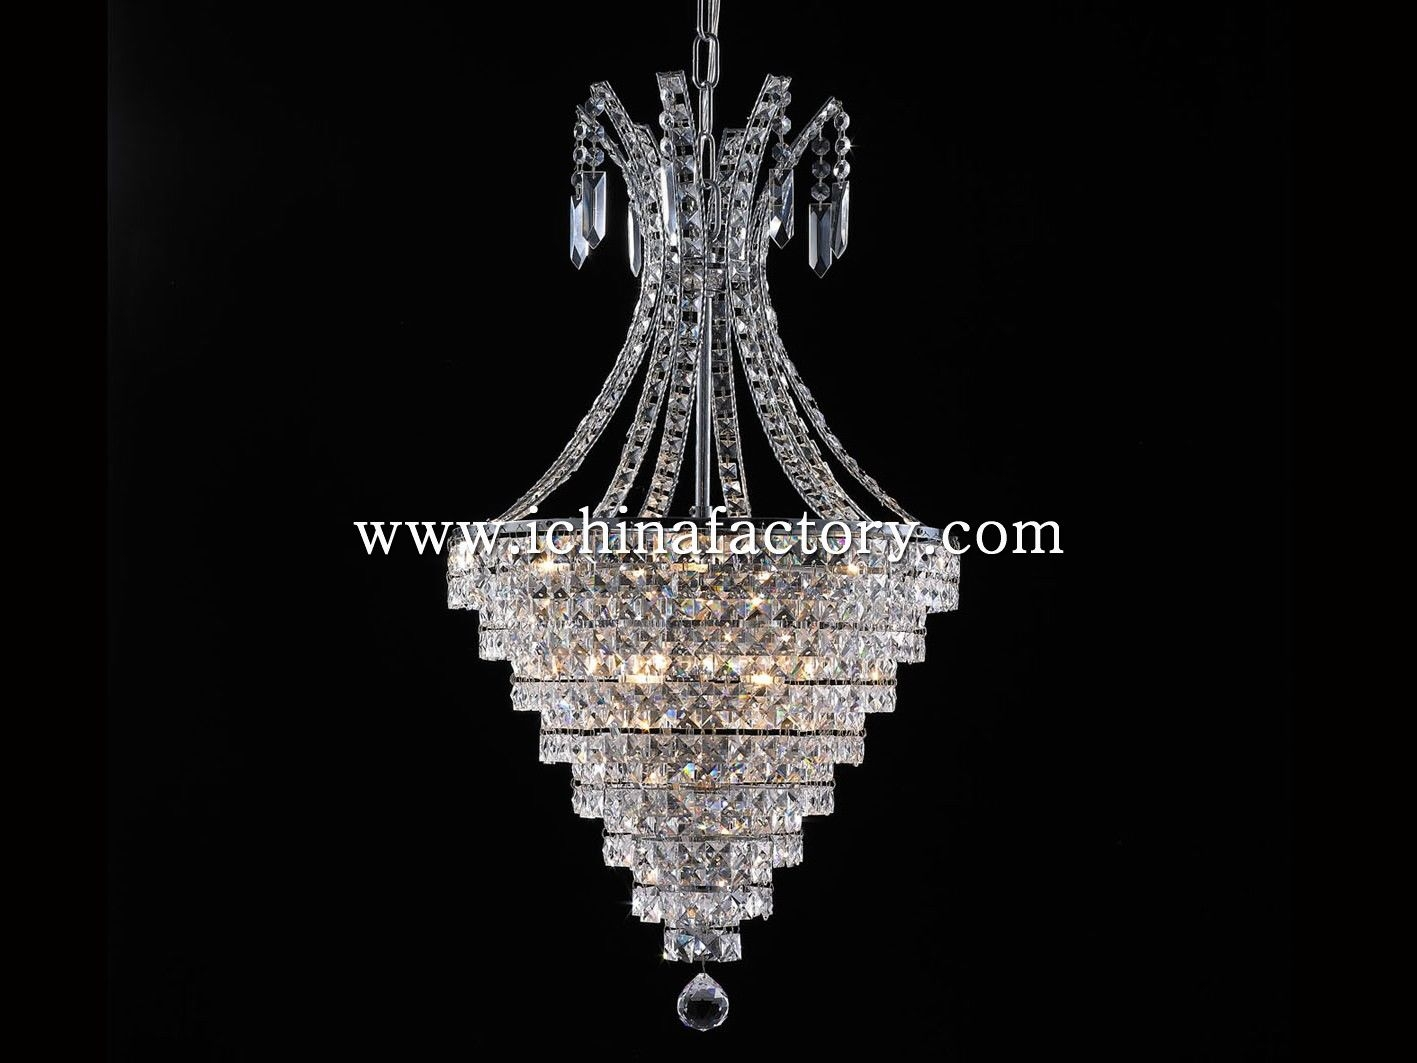 China Factory Wowlite Cone Shape Chandelier Pendant Lamp Dressed With Regard To Chinese Chandelier (#4 of 12)